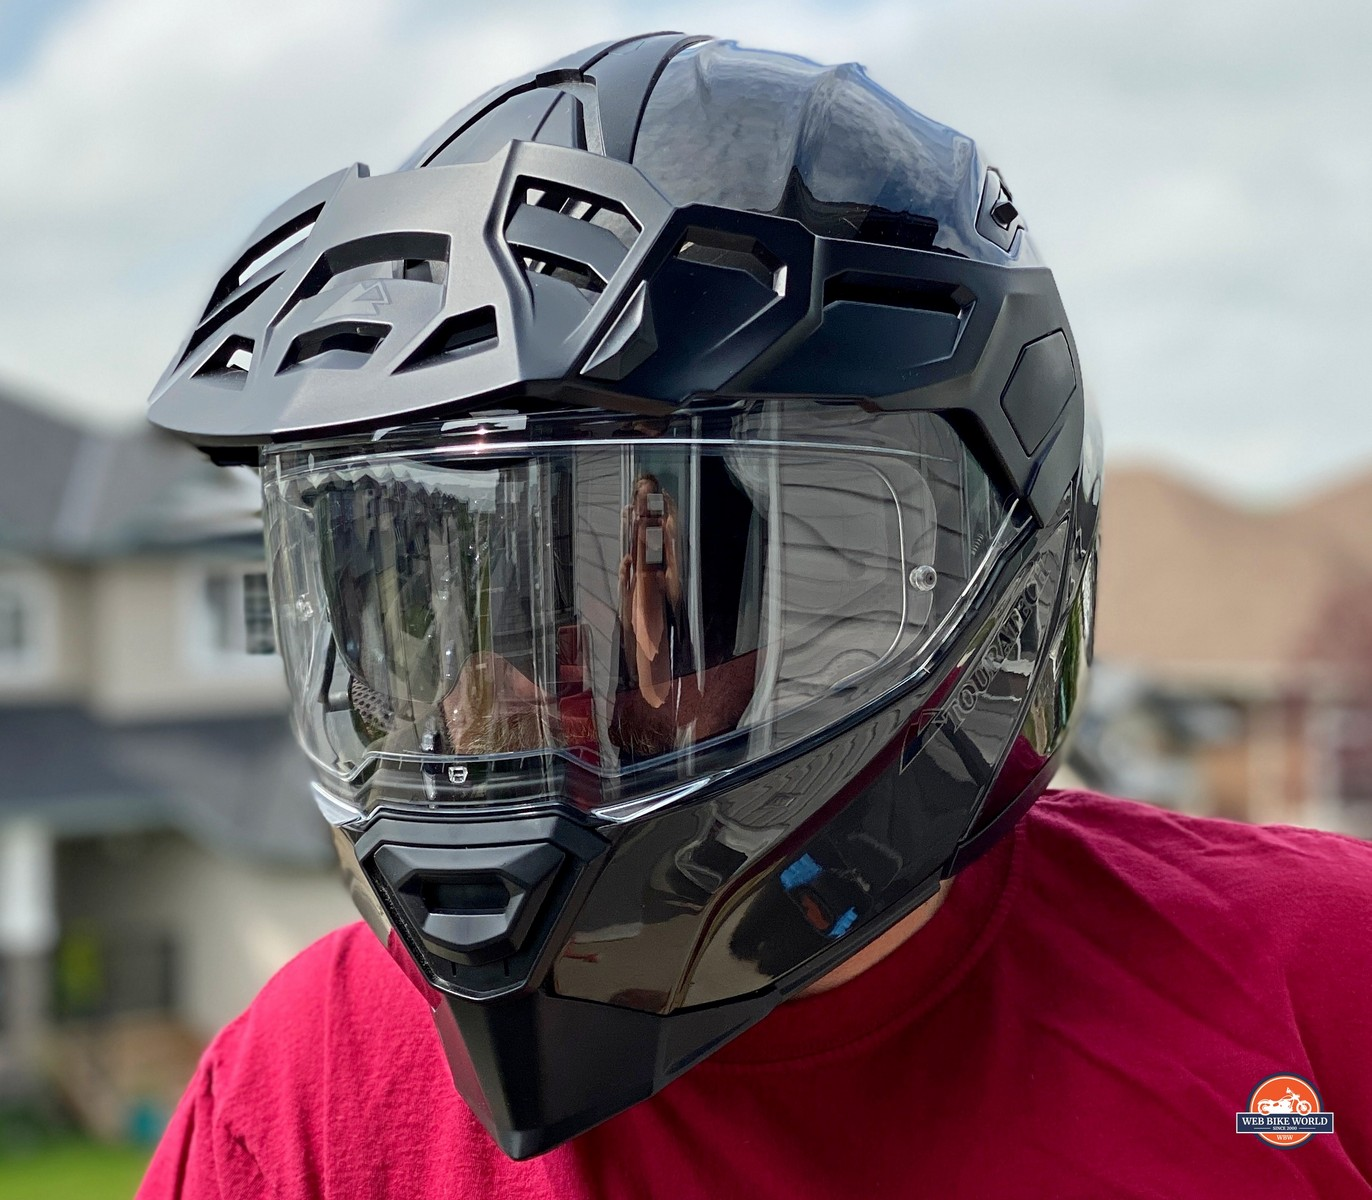 Angle view of the Touratech Aventuro Traveller Carbon helmet.